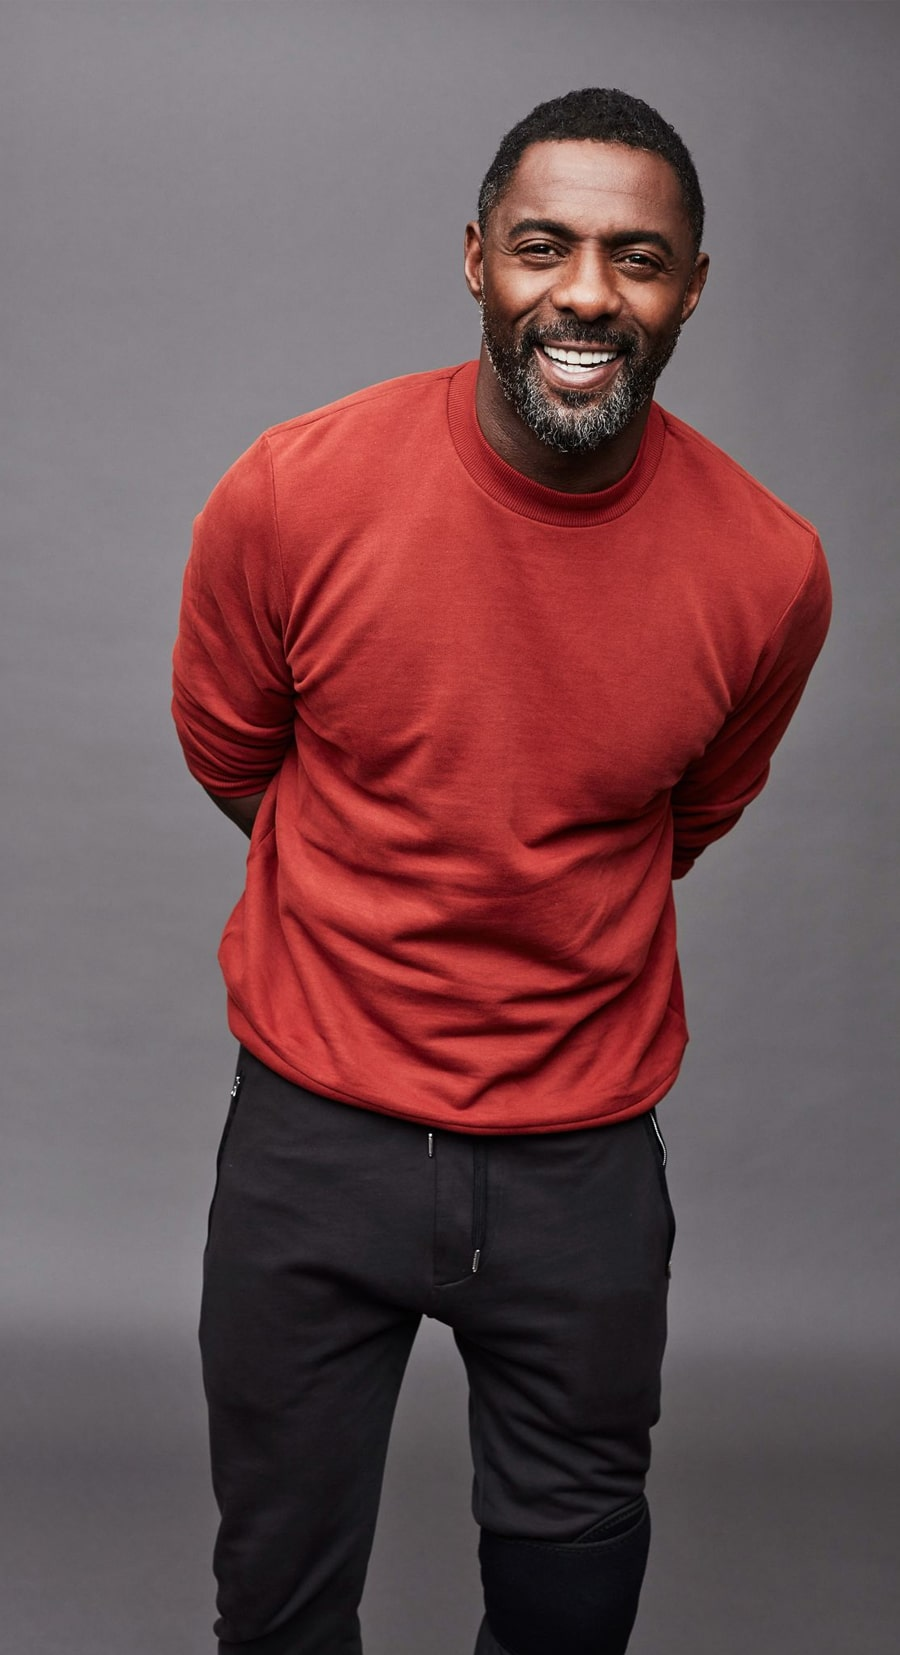 Idris Elba in red sweater